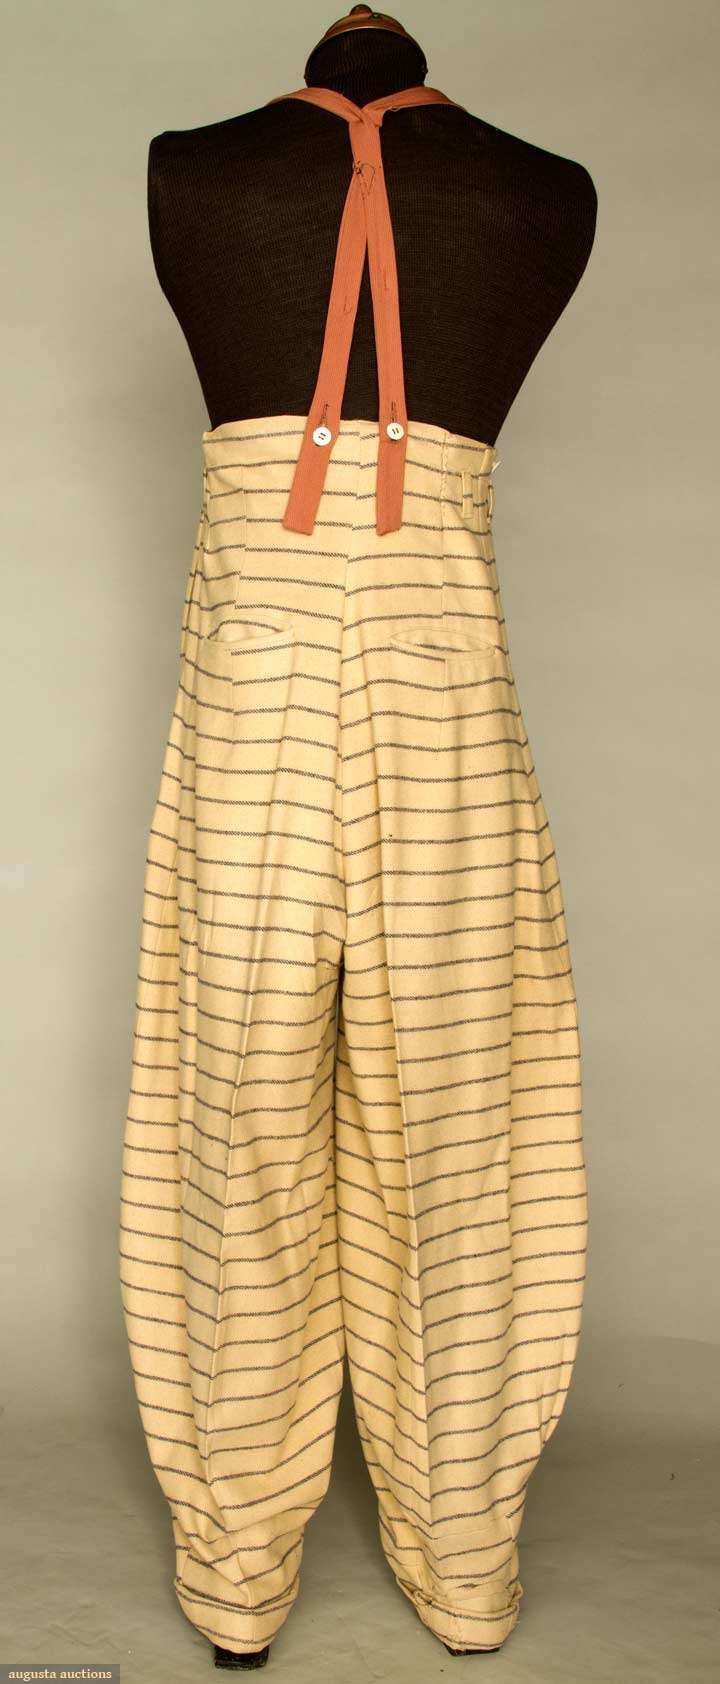 "* MAN'S WOOL ZOOT SUIT, N.J., 1938-1942 New York City 2 different pattern striped wools, long fitted coat, oversize padded shoulders & exterior pouch pockets, red plastic buttons, high-waist balloon pants, pegged cuffs, 4 slash pockets, crudely made suspenders in cinnamon wool, Sh-Sh 26"", Ch 45"", Jacket L 41"", High W (taken in) 32"", Outseam 50.5"", Inseam 31"", (large L-shaped tear near 1 pant pocket, darning on jacket's L shoulder) very good. From Newark, N.J. area"